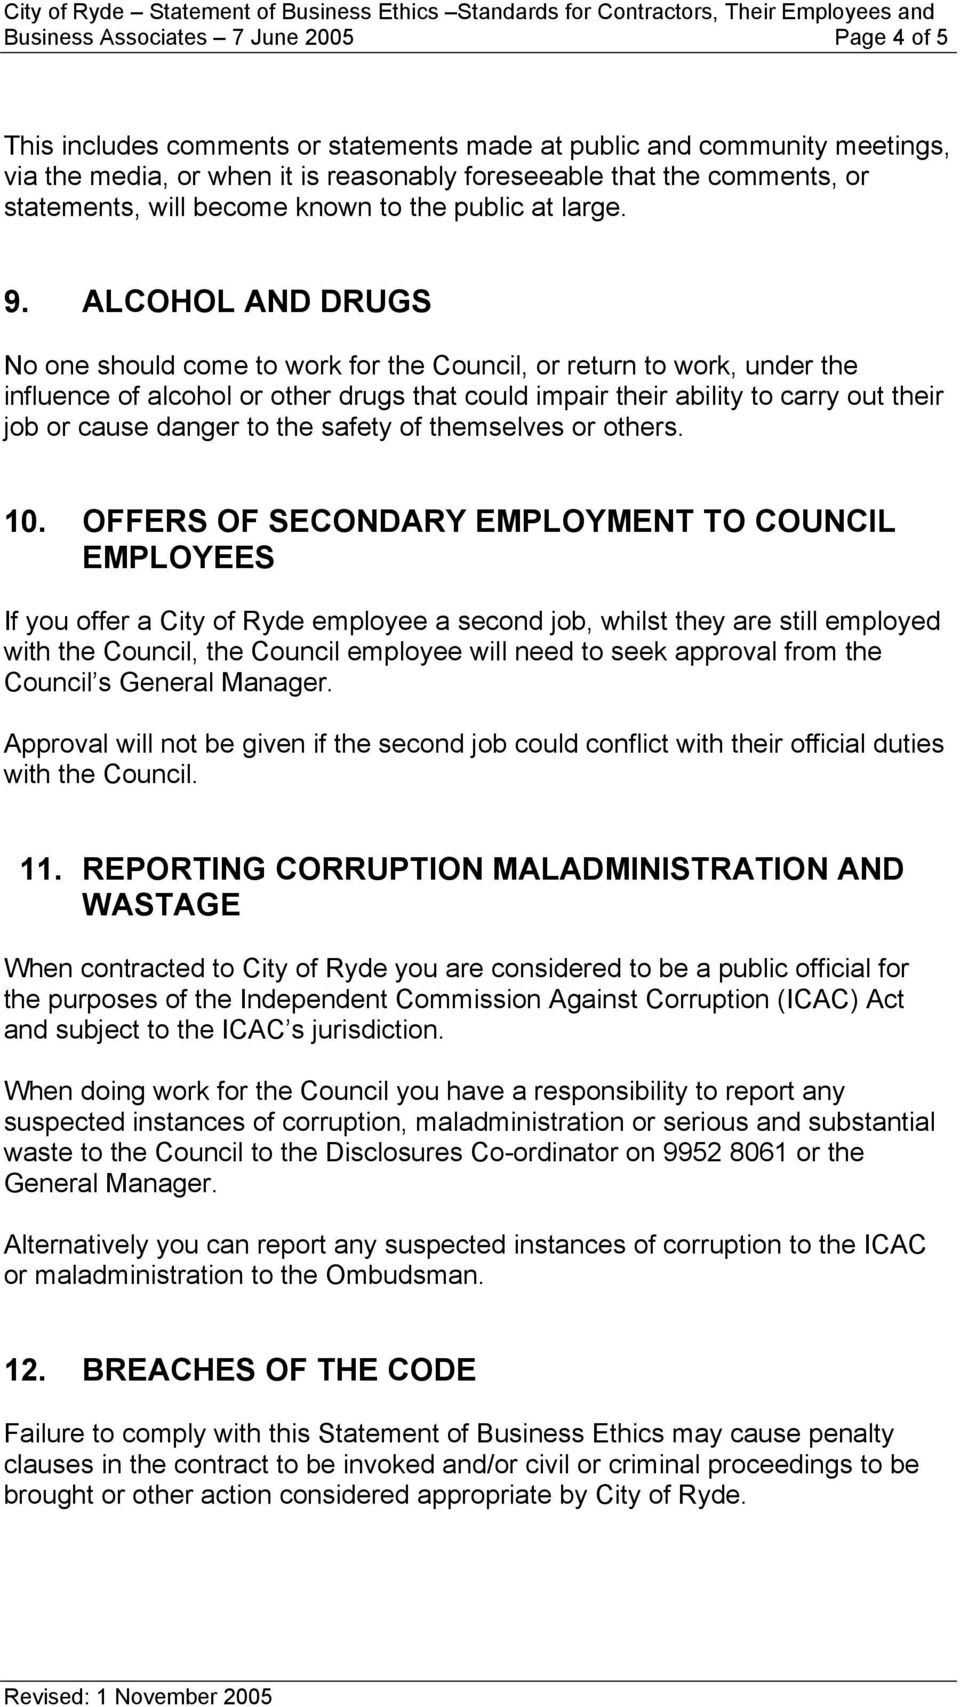 ALCOHOL AND DRUGS No one should come to work for the Council, or return to work, under the influence of alcohol or other drugs that could impair their ability to carry out their job or cause danger